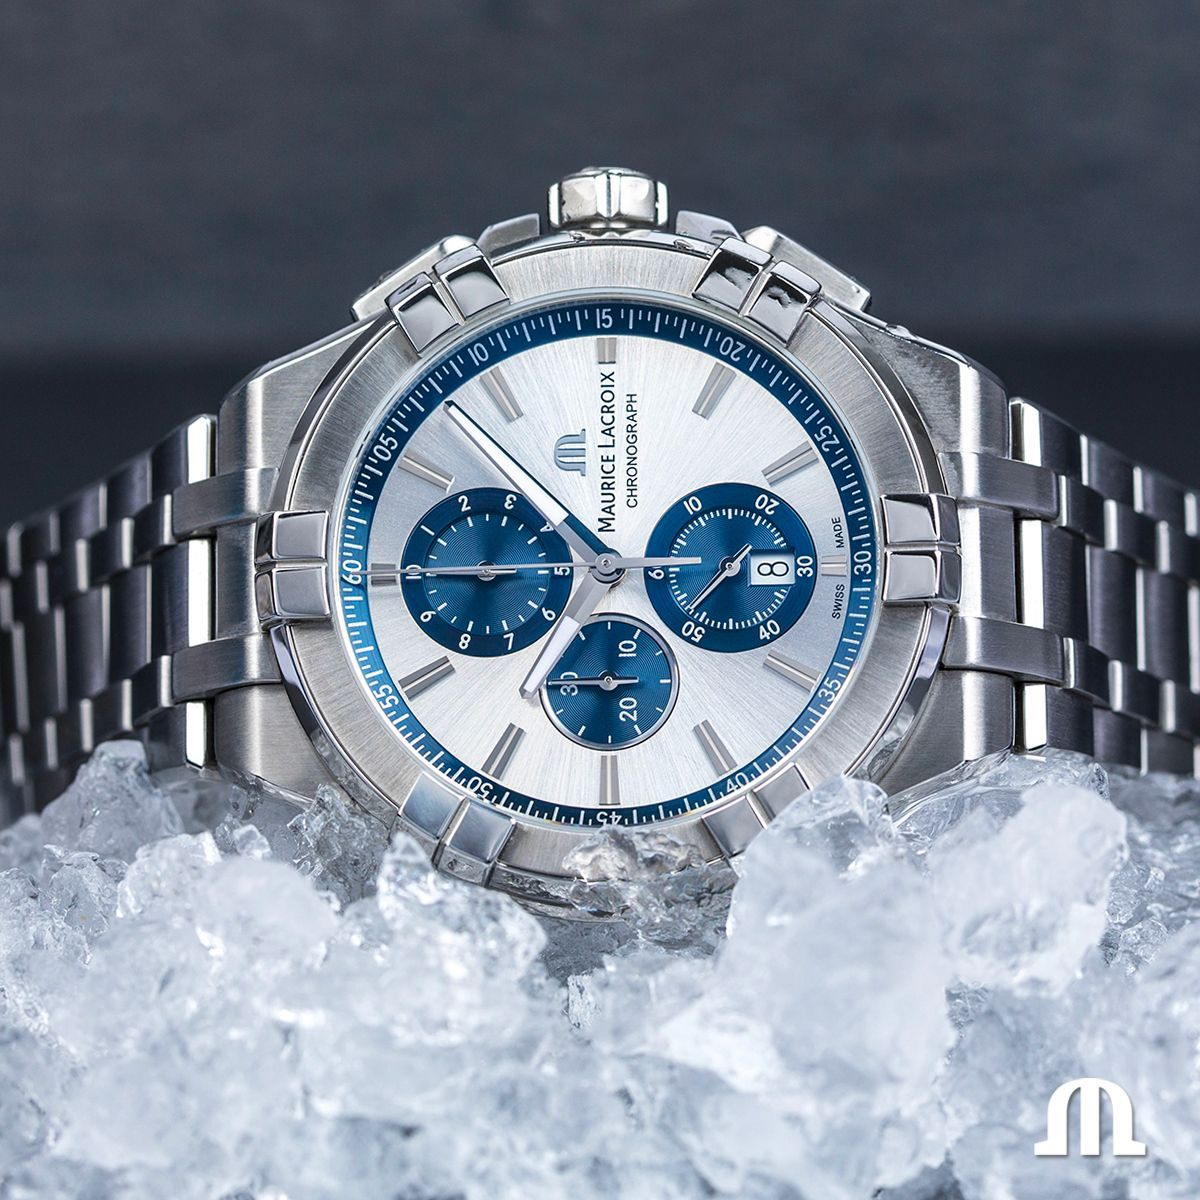 Maurice Lacroix @Maurice_Lacroix This winter, fight off the cold in style with the Aikon Chronograph.